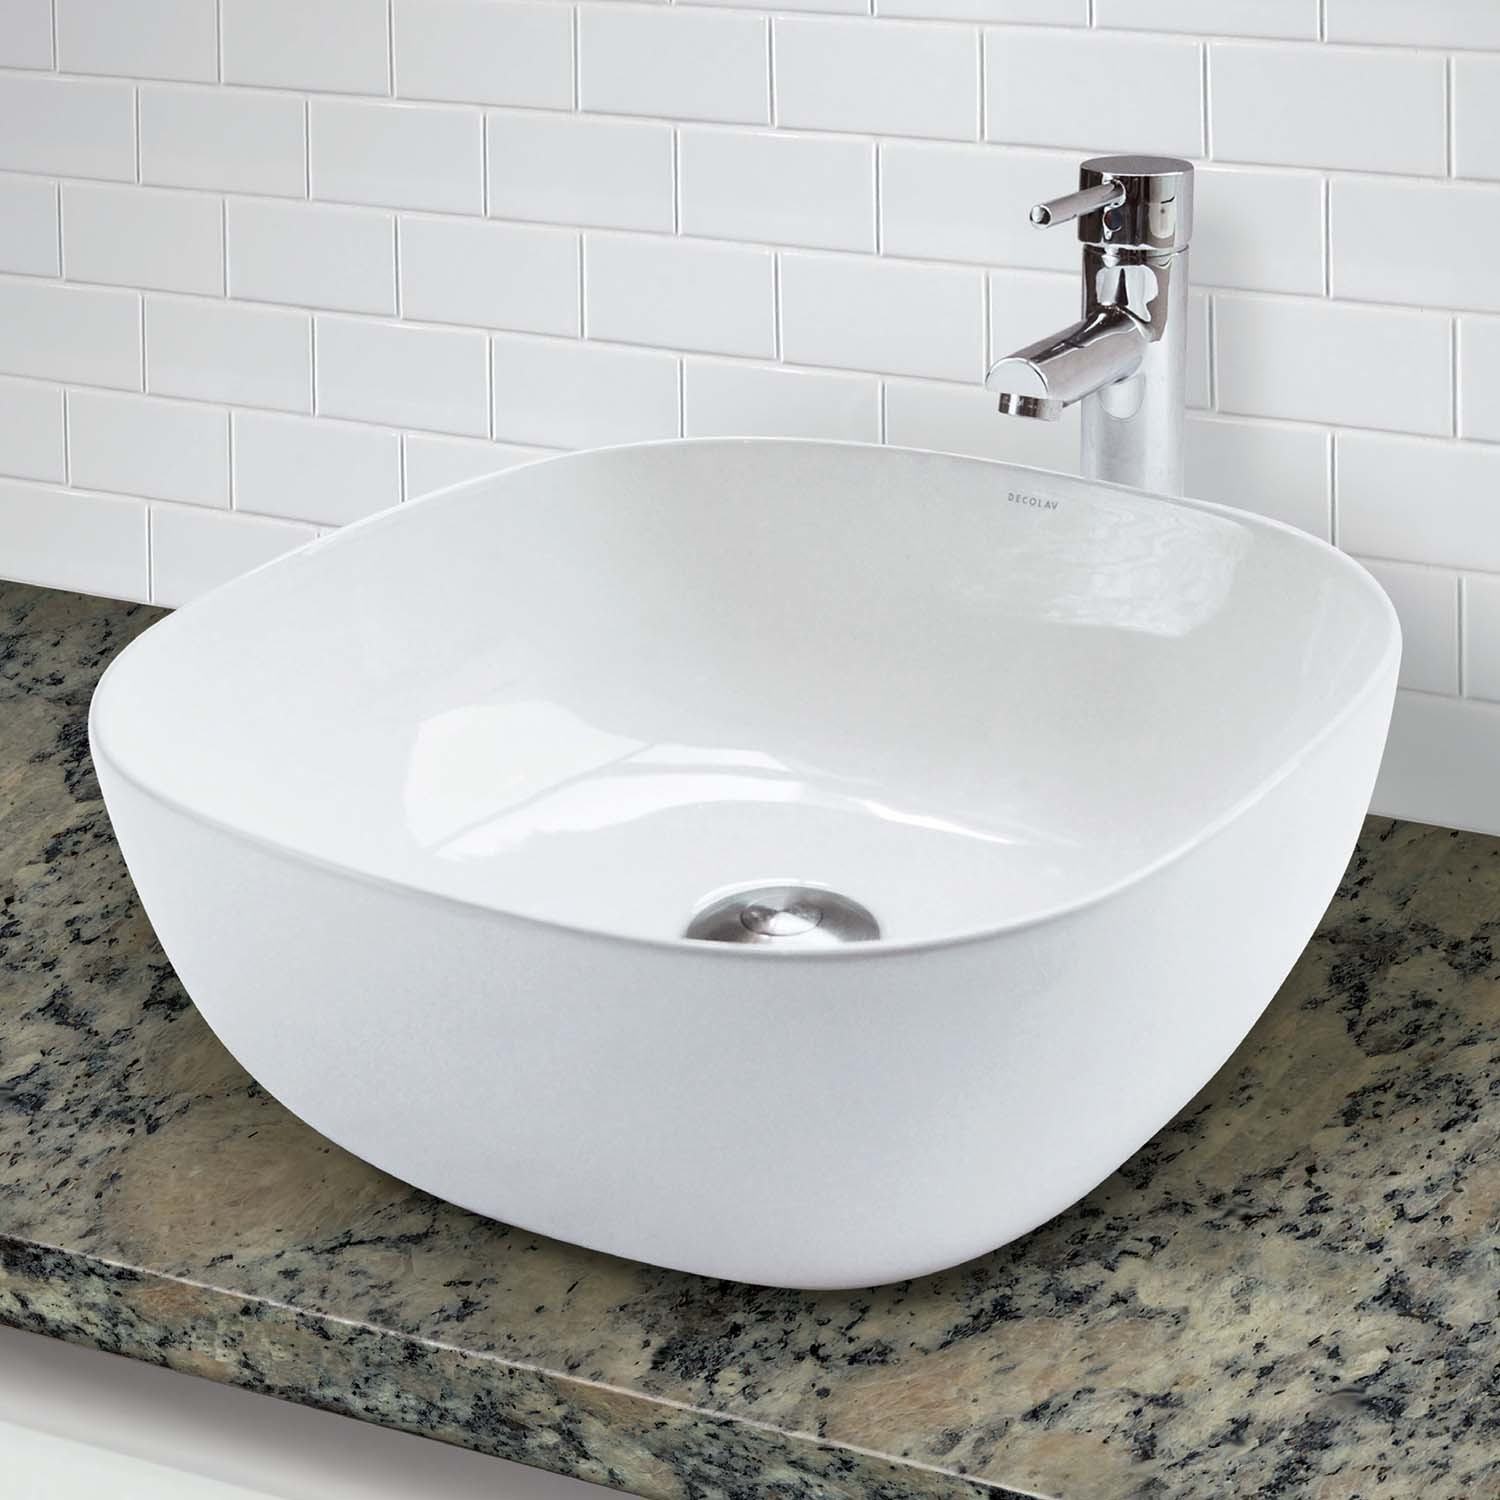 decolav 1488 cwh square above counter vitreous china bathroom sink. Black Bedroom Furniture Sets. Home Design Ideas